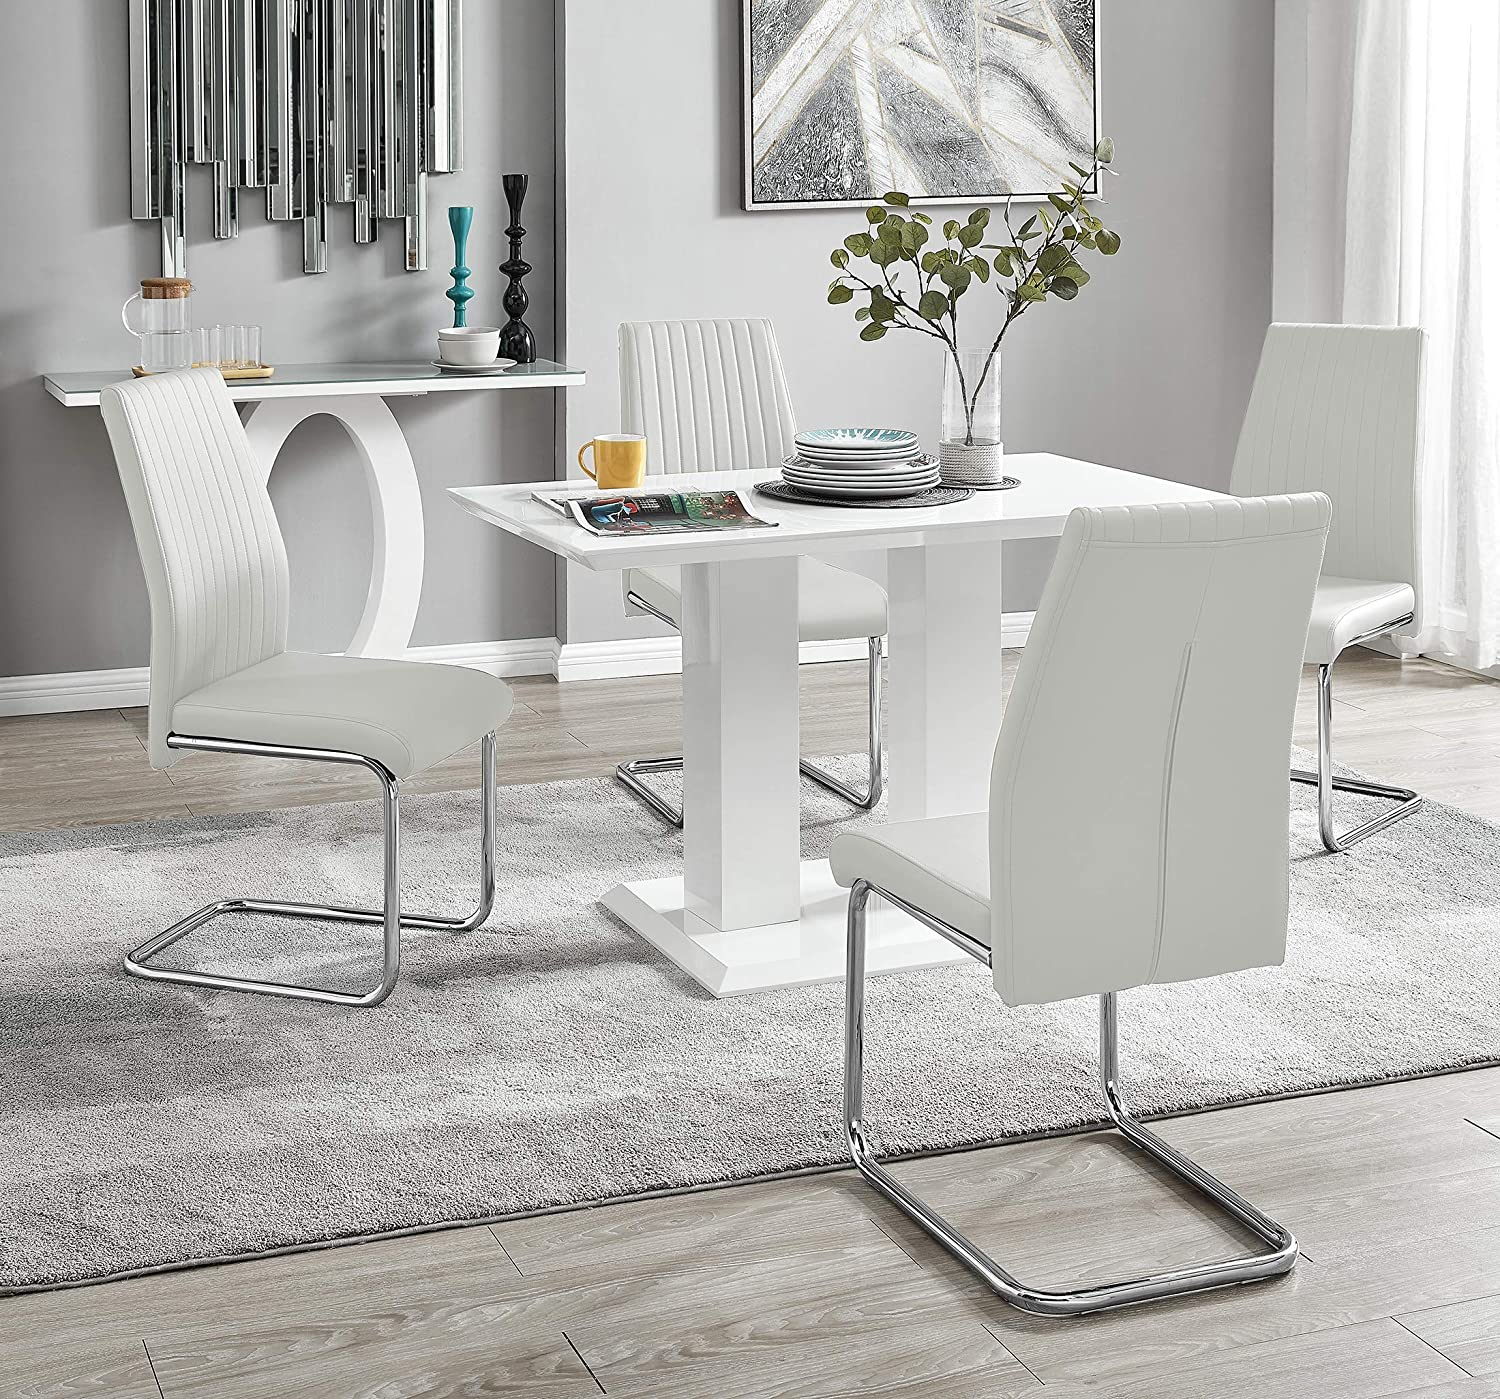 Imperia Modern White High Gloss Dining Table And 9 Lorenzo Chrome Leather  Dining Chairs Set White Table + White Lorenzo Chairs